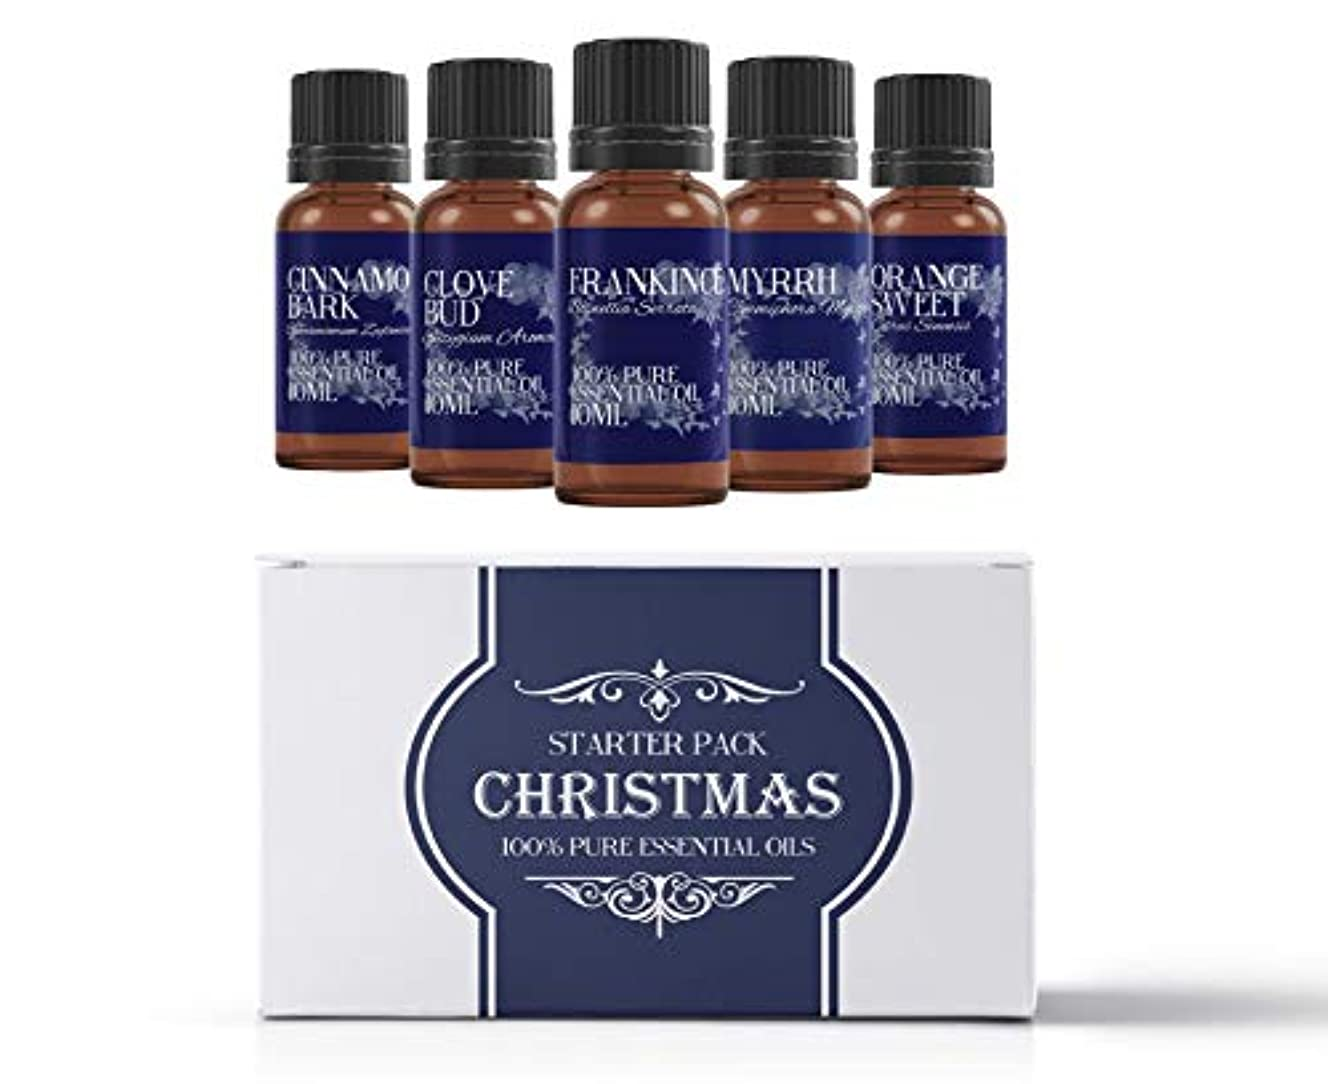 入植者カバレッジ防衛Mystic Moments | Essential Oil Starter Pack - Christmas Oils - 5 x 10ml - 100% Pure